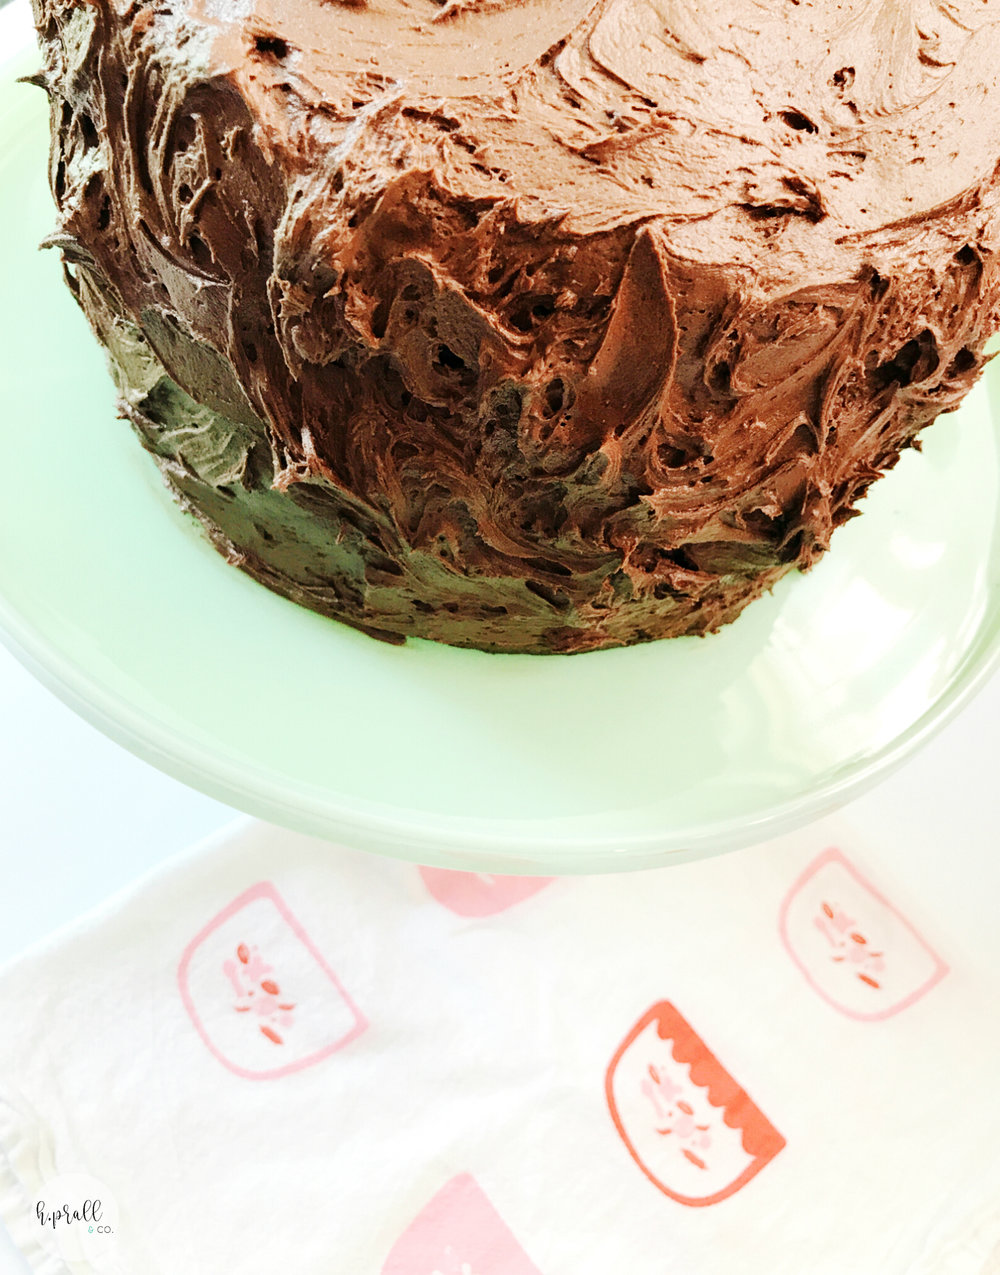 Triple Layer Chocolate Cake from H.Prall & Co. | Interior Decorating Blog | hprallandco.com